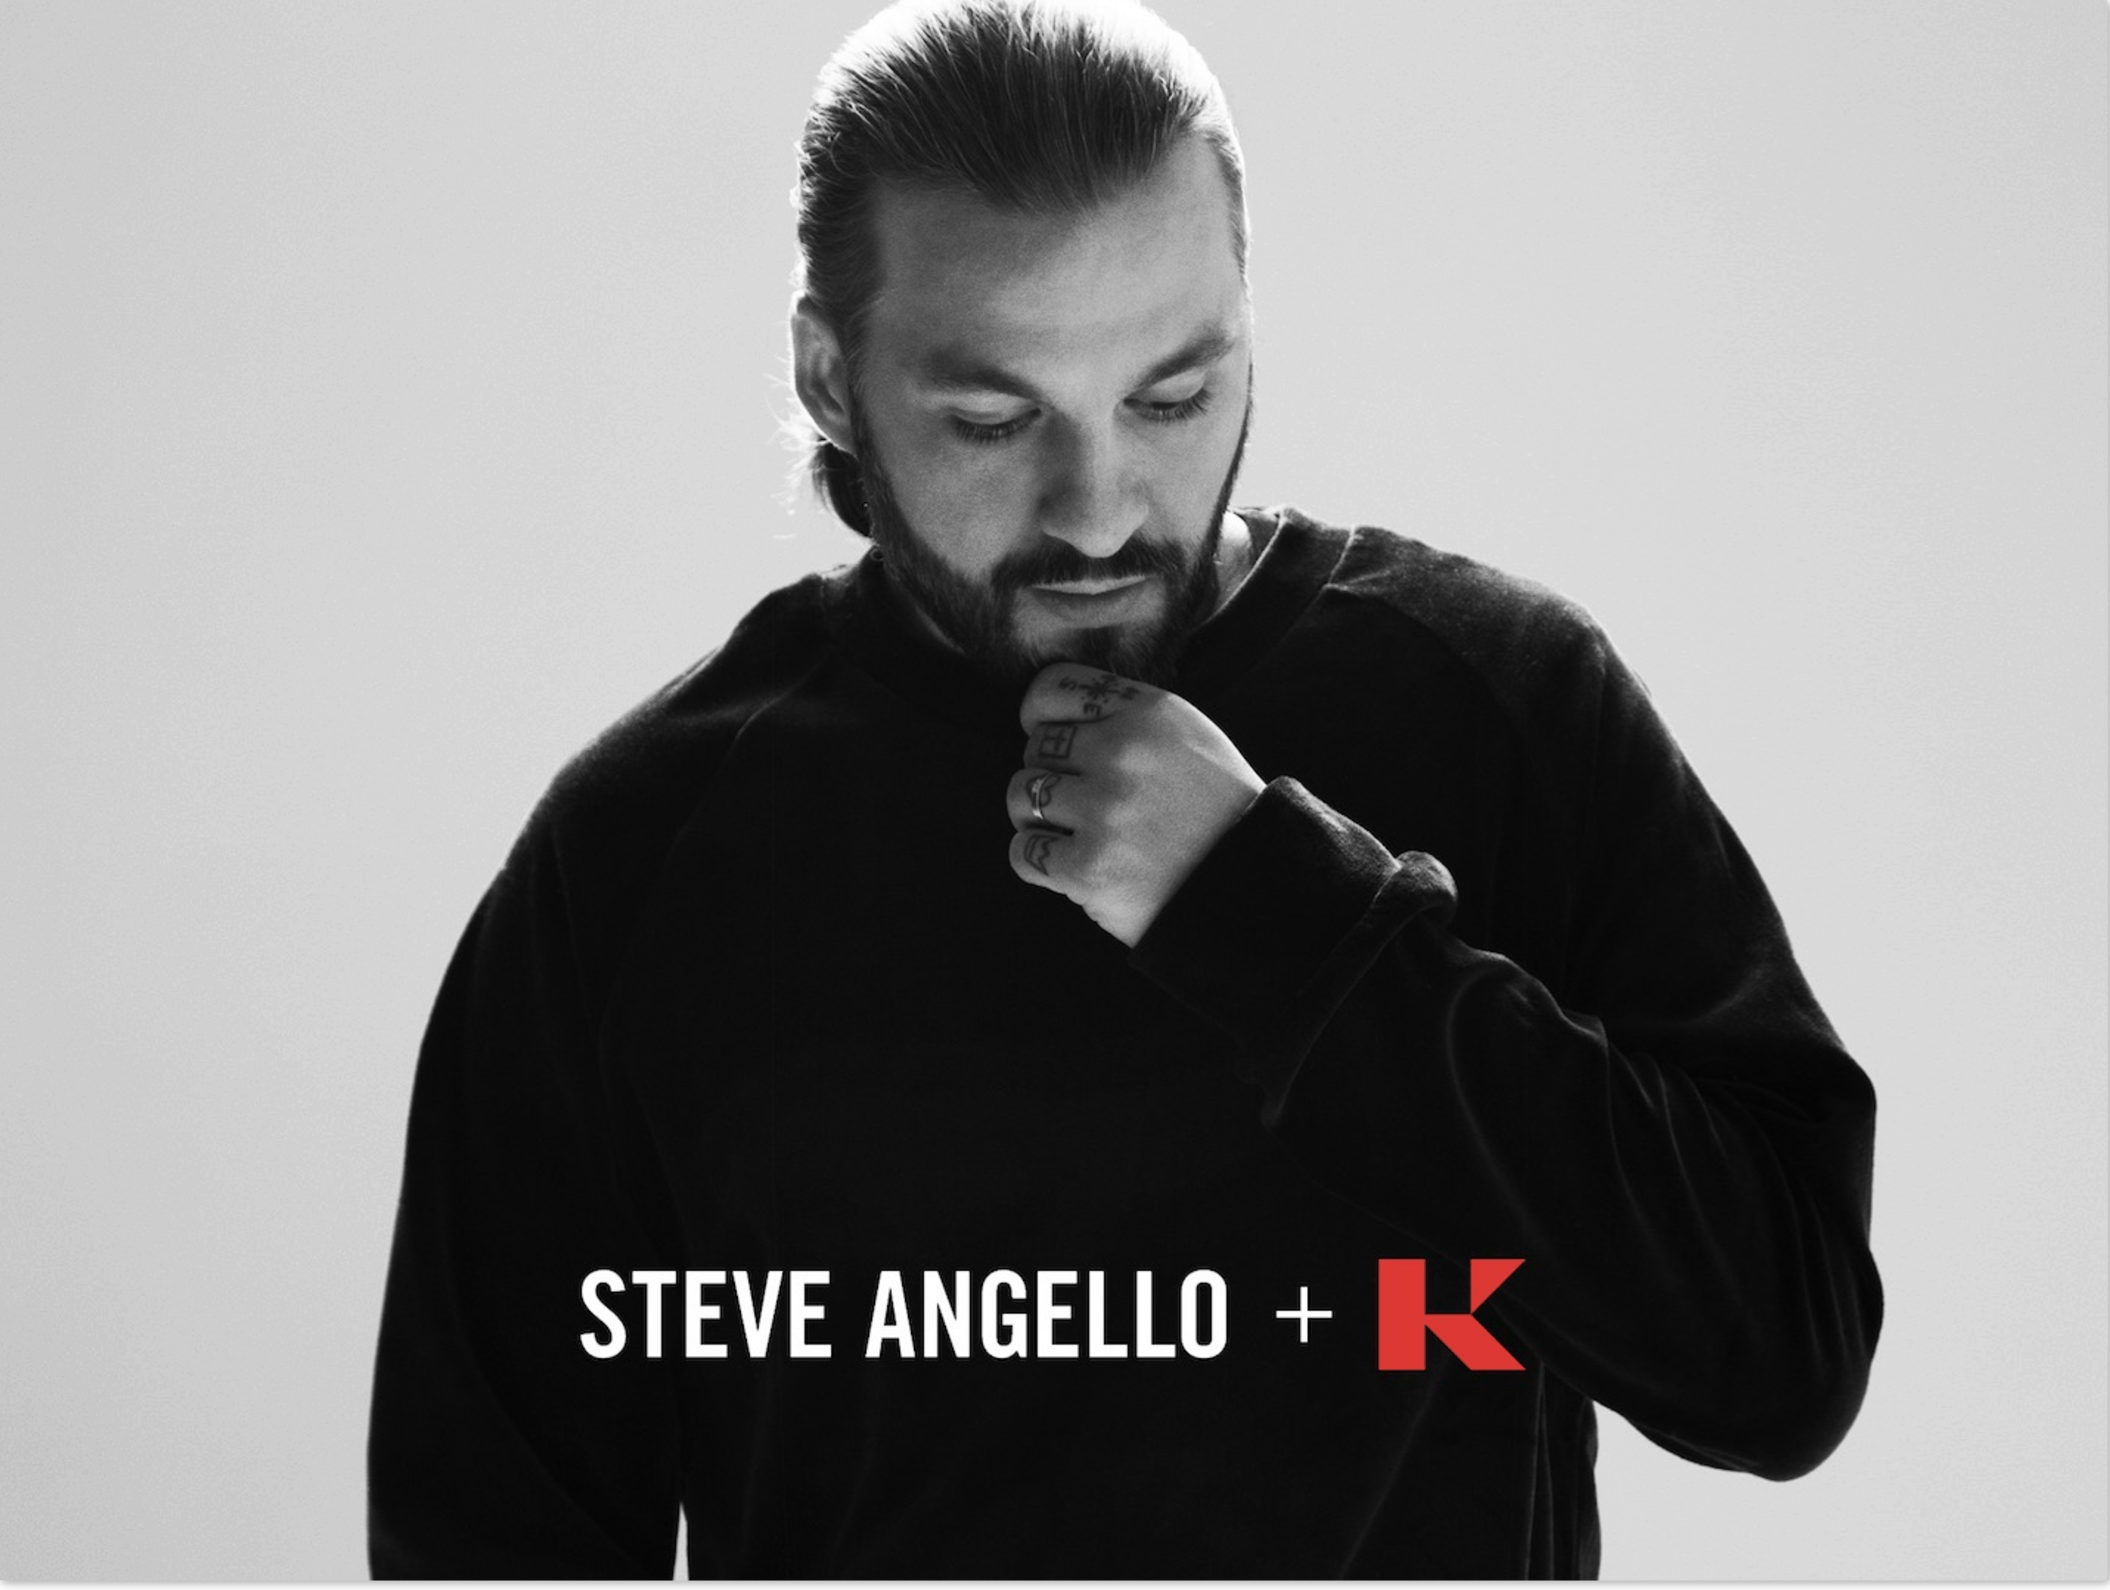 KOBALT SIGNS STEVE ANGELLO TO WORLDWIDE RECORDINGS DEAL